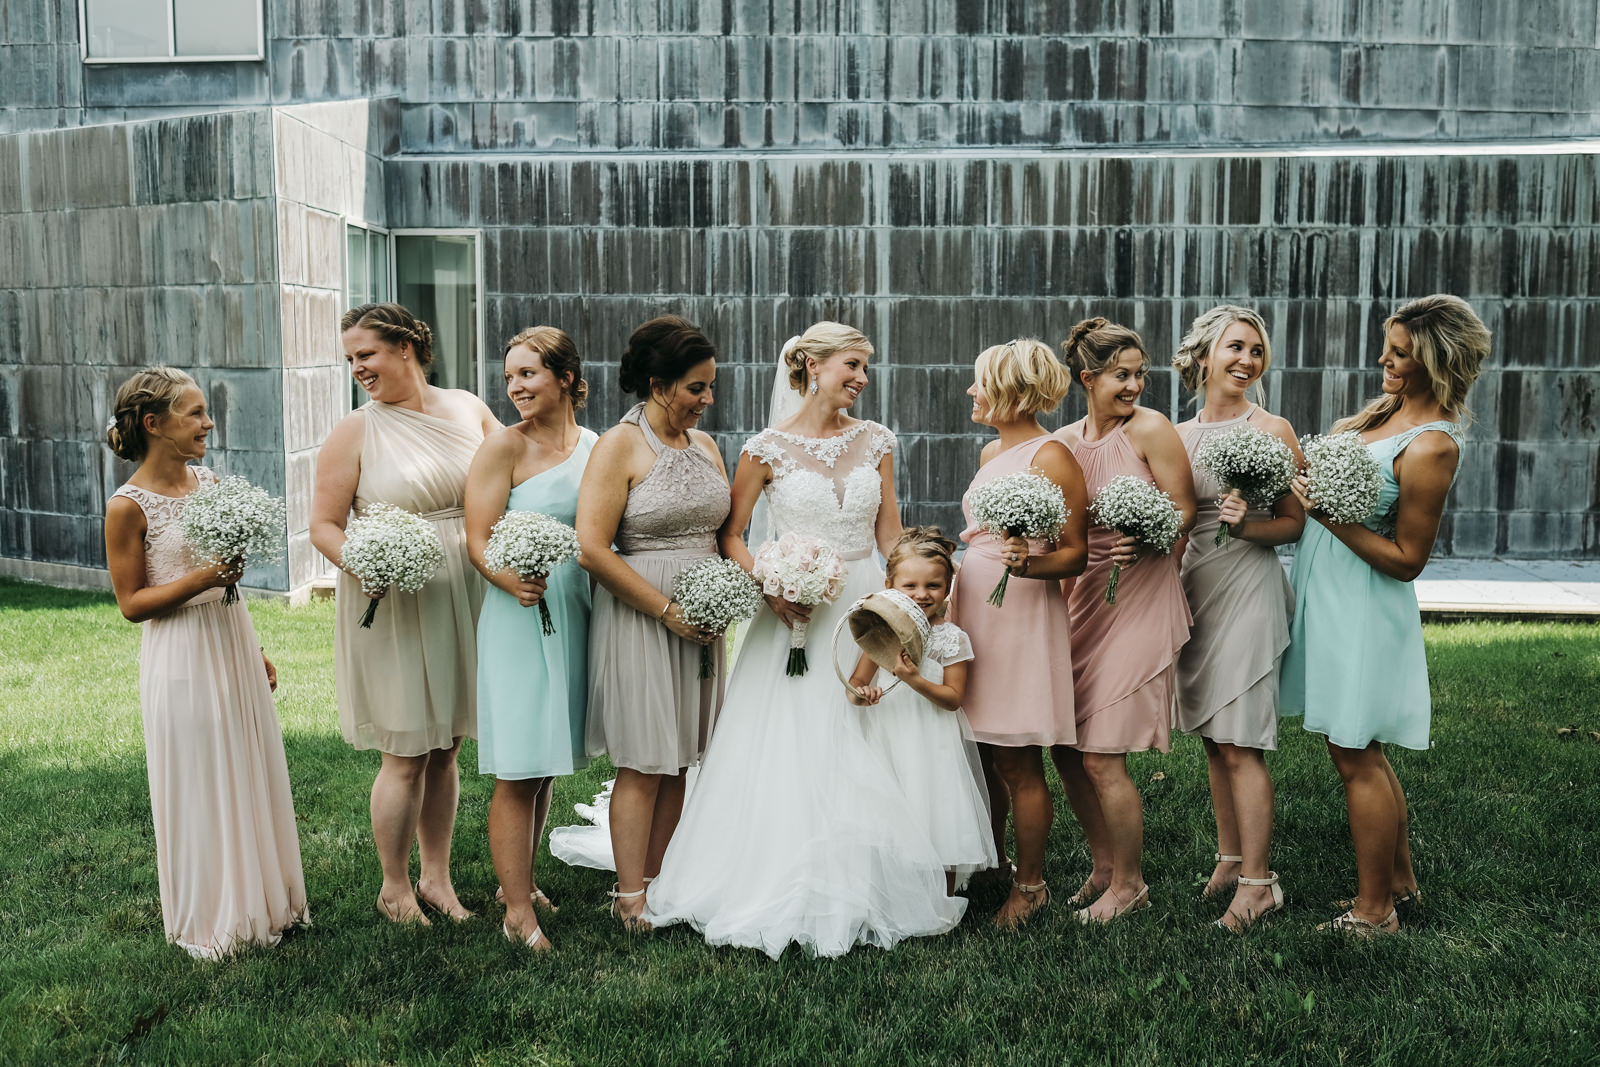 The bridesmaids wear a mix of blue and blush dresses for the bride's wedding in downtown Toledo, Ohio.